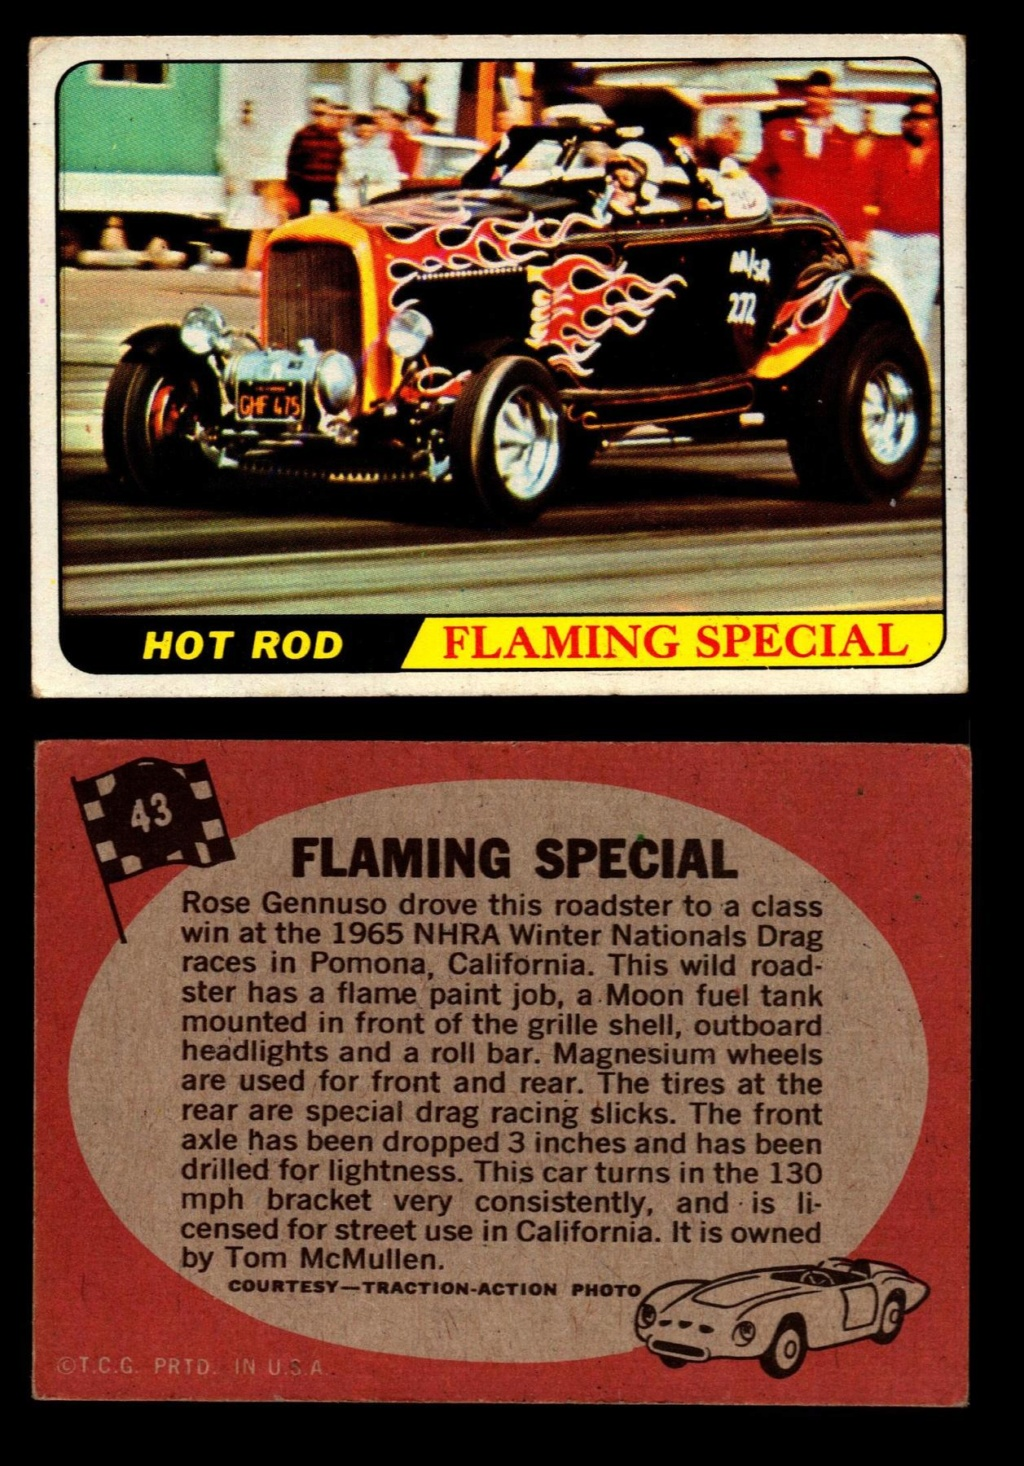 Hot Rods Topps - Vintage Trading Cards 1968 - Custom car - Dragster - Racer - Dream car - Barris Kustom City - Ed Roth Darrill Starbird, Gene Winfield, Bill Cuchenberry - Page 2 43_05e11